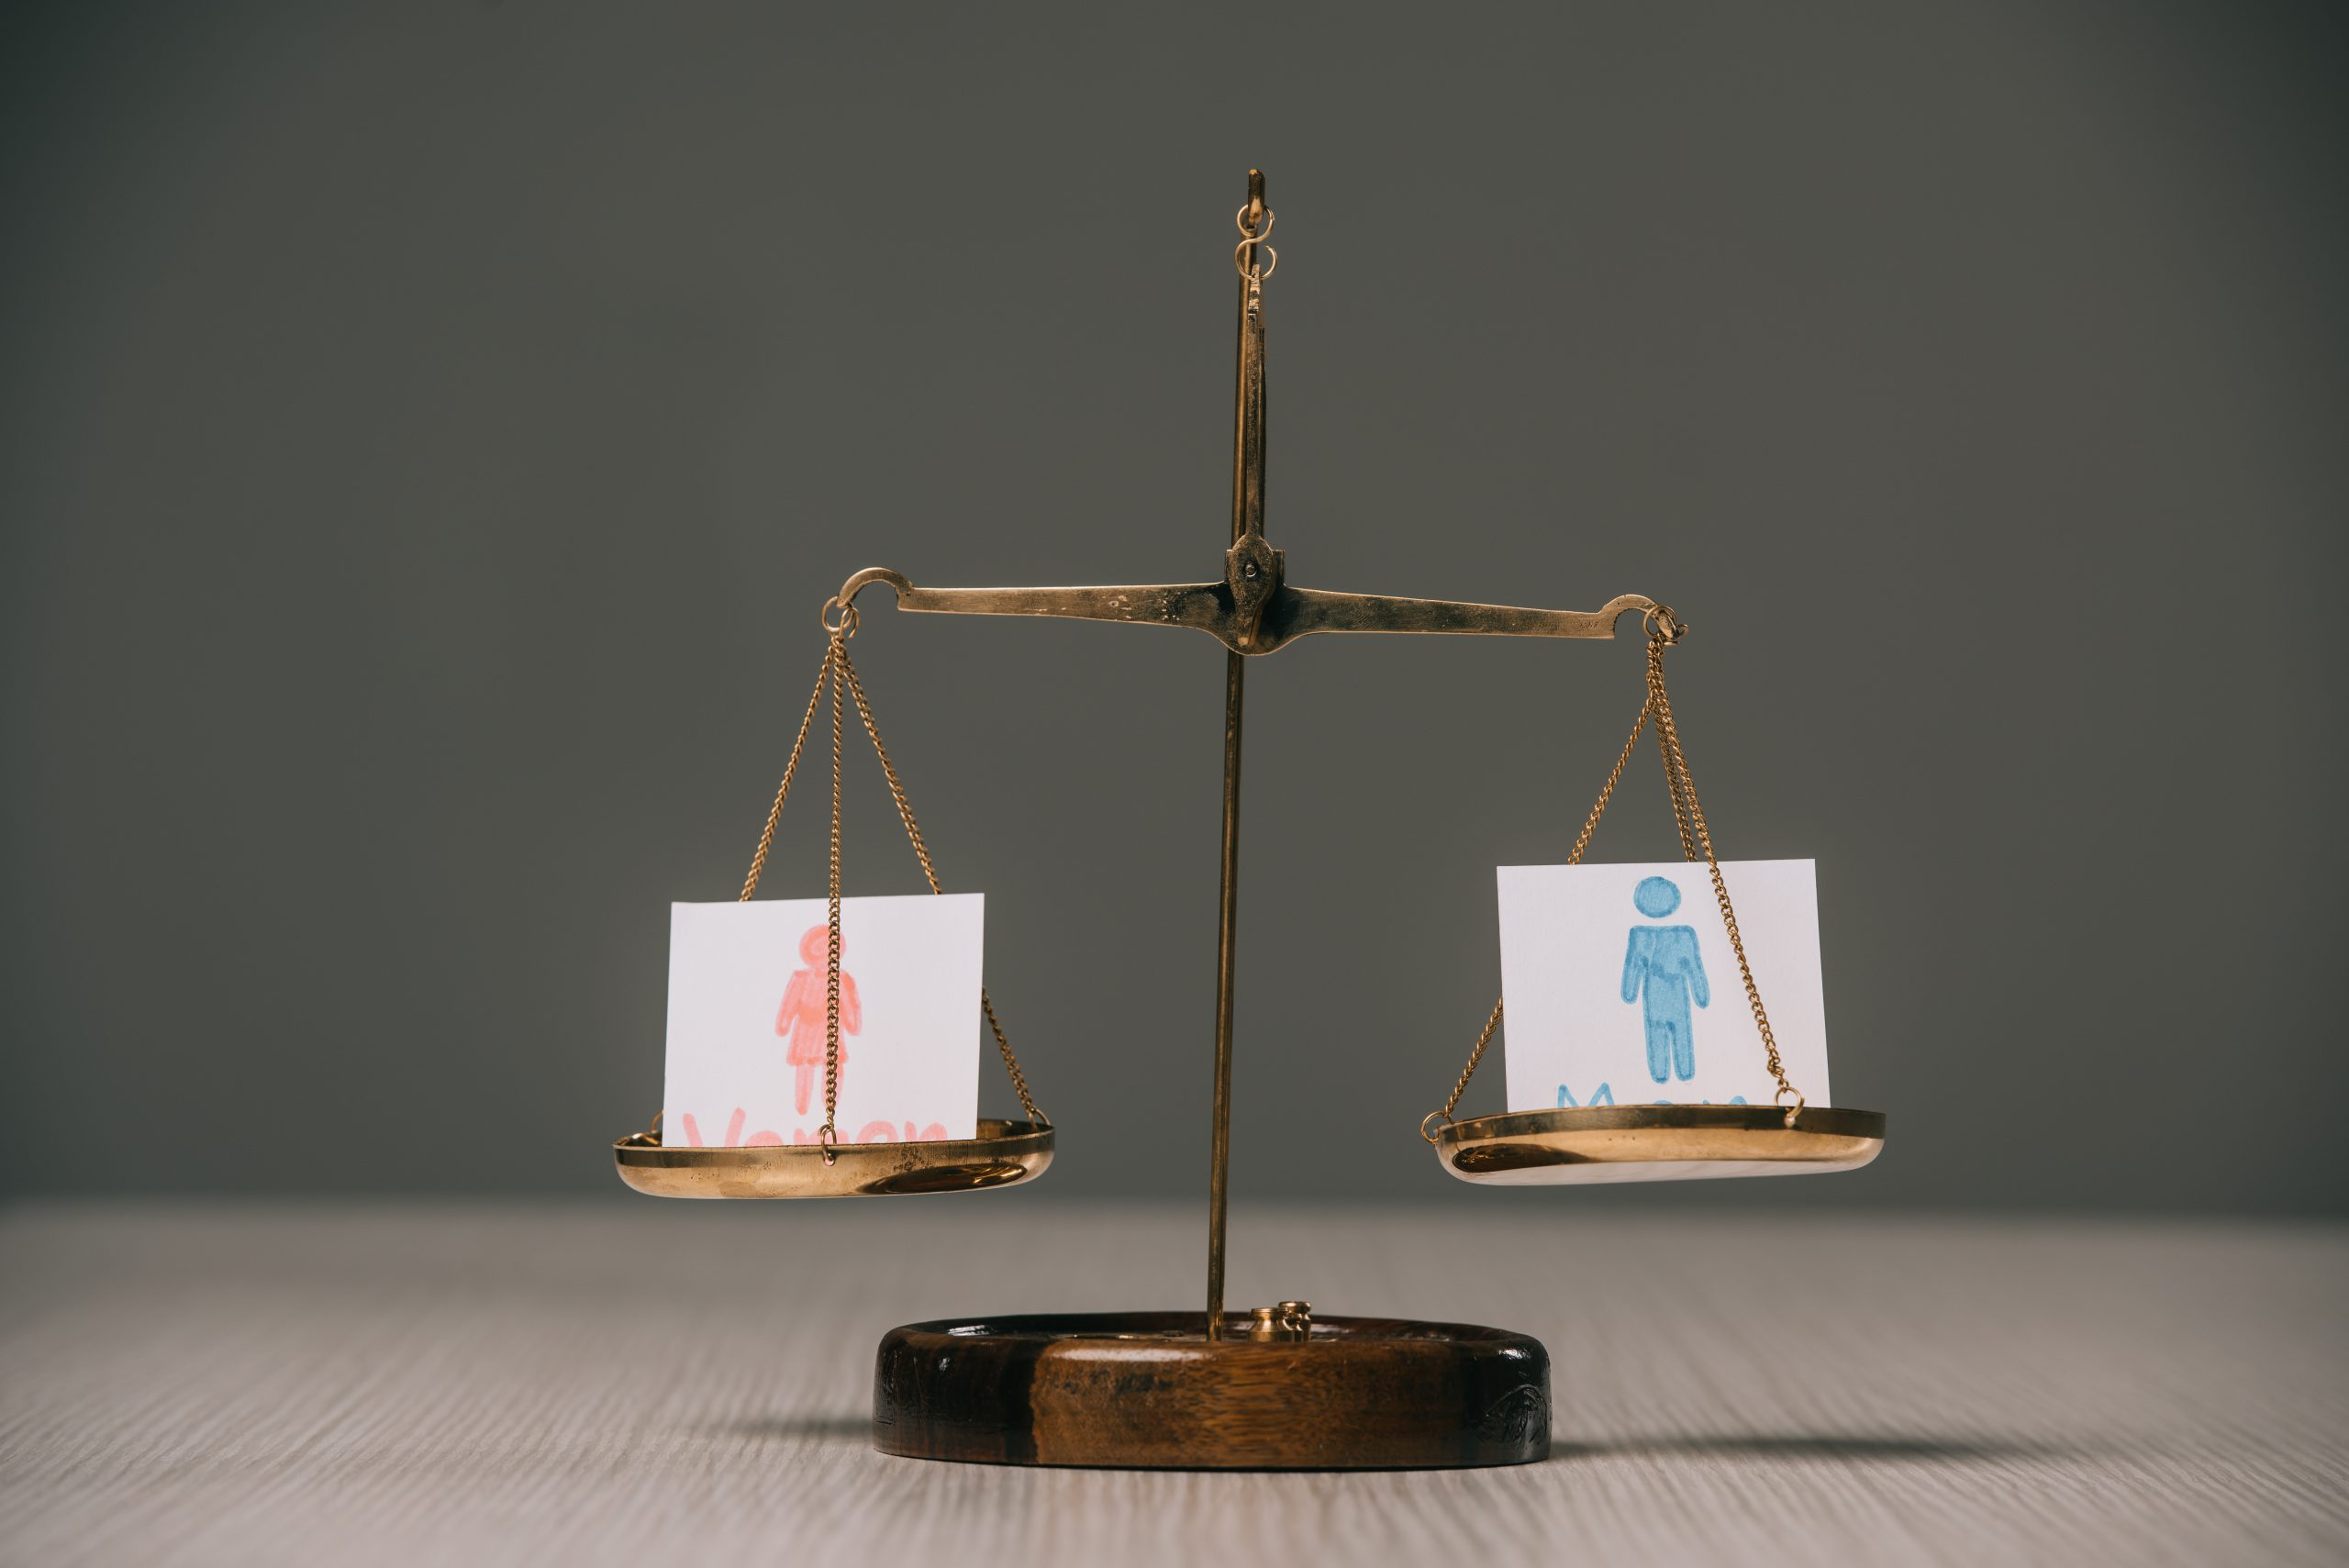 male and female symbols on scales on wooden table on grey, gender equality concept